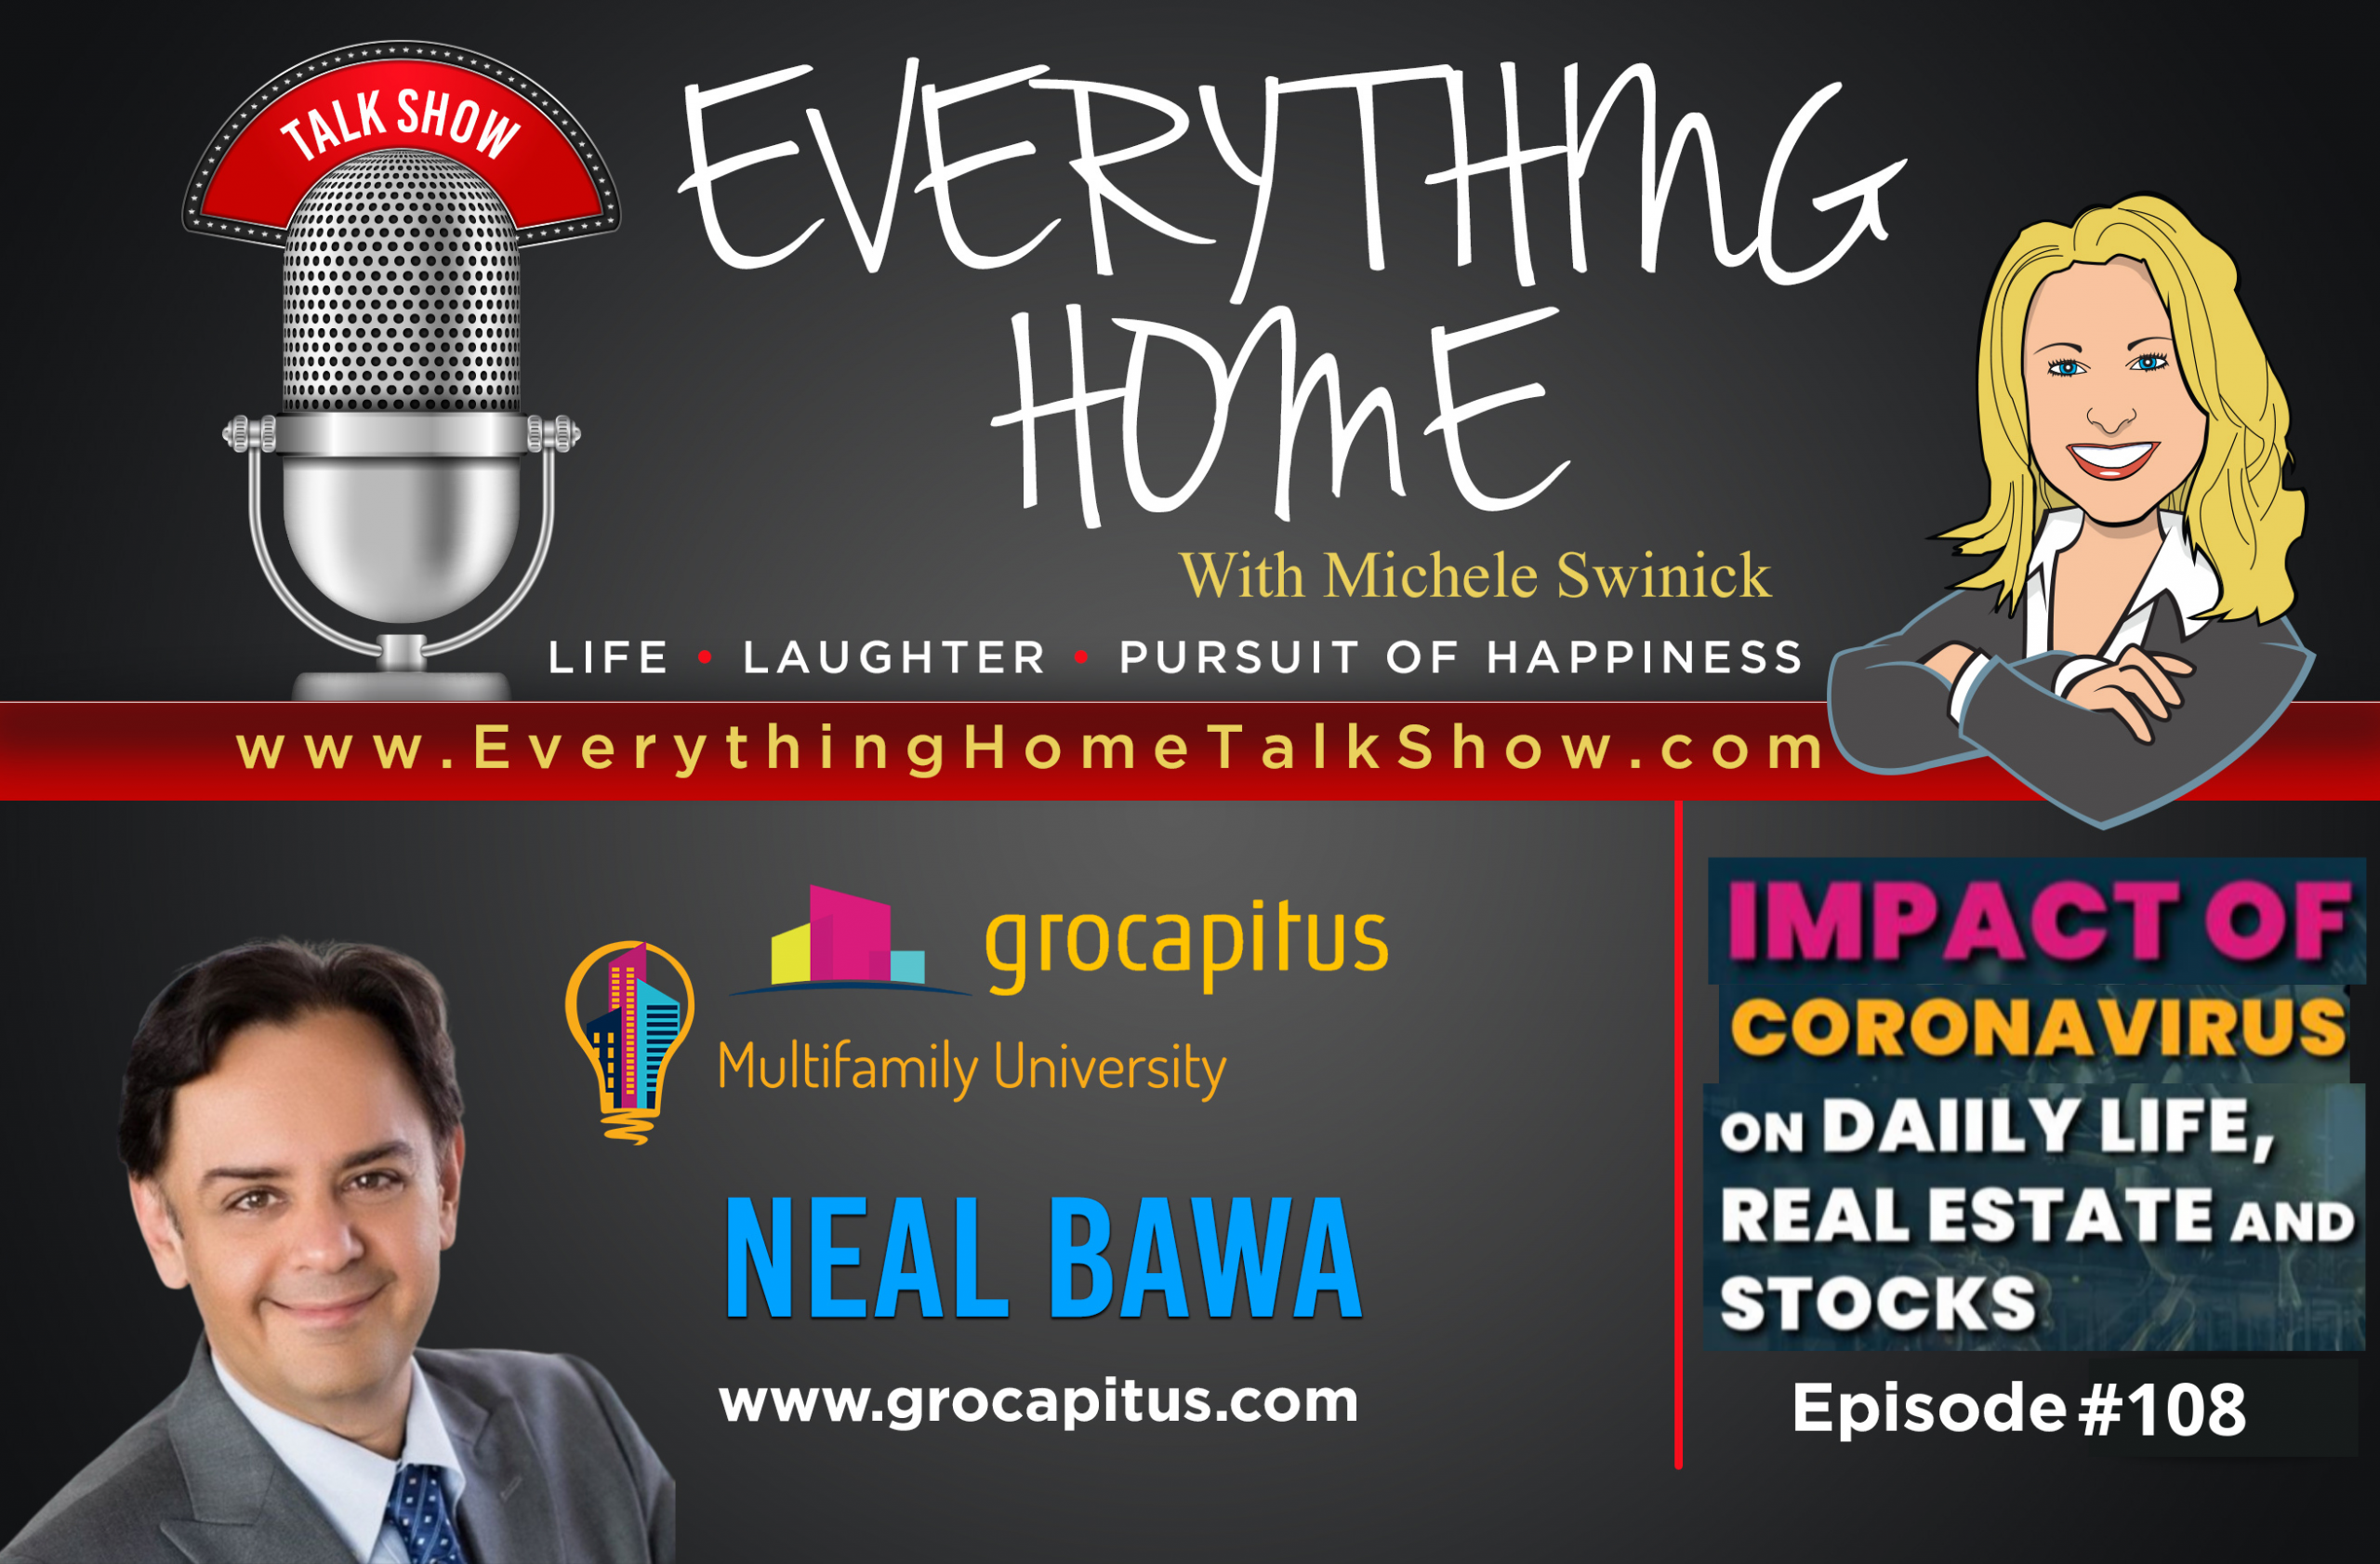 #108: Impact Of Coronavirus: On Daily Life, Real Estate & Stocks